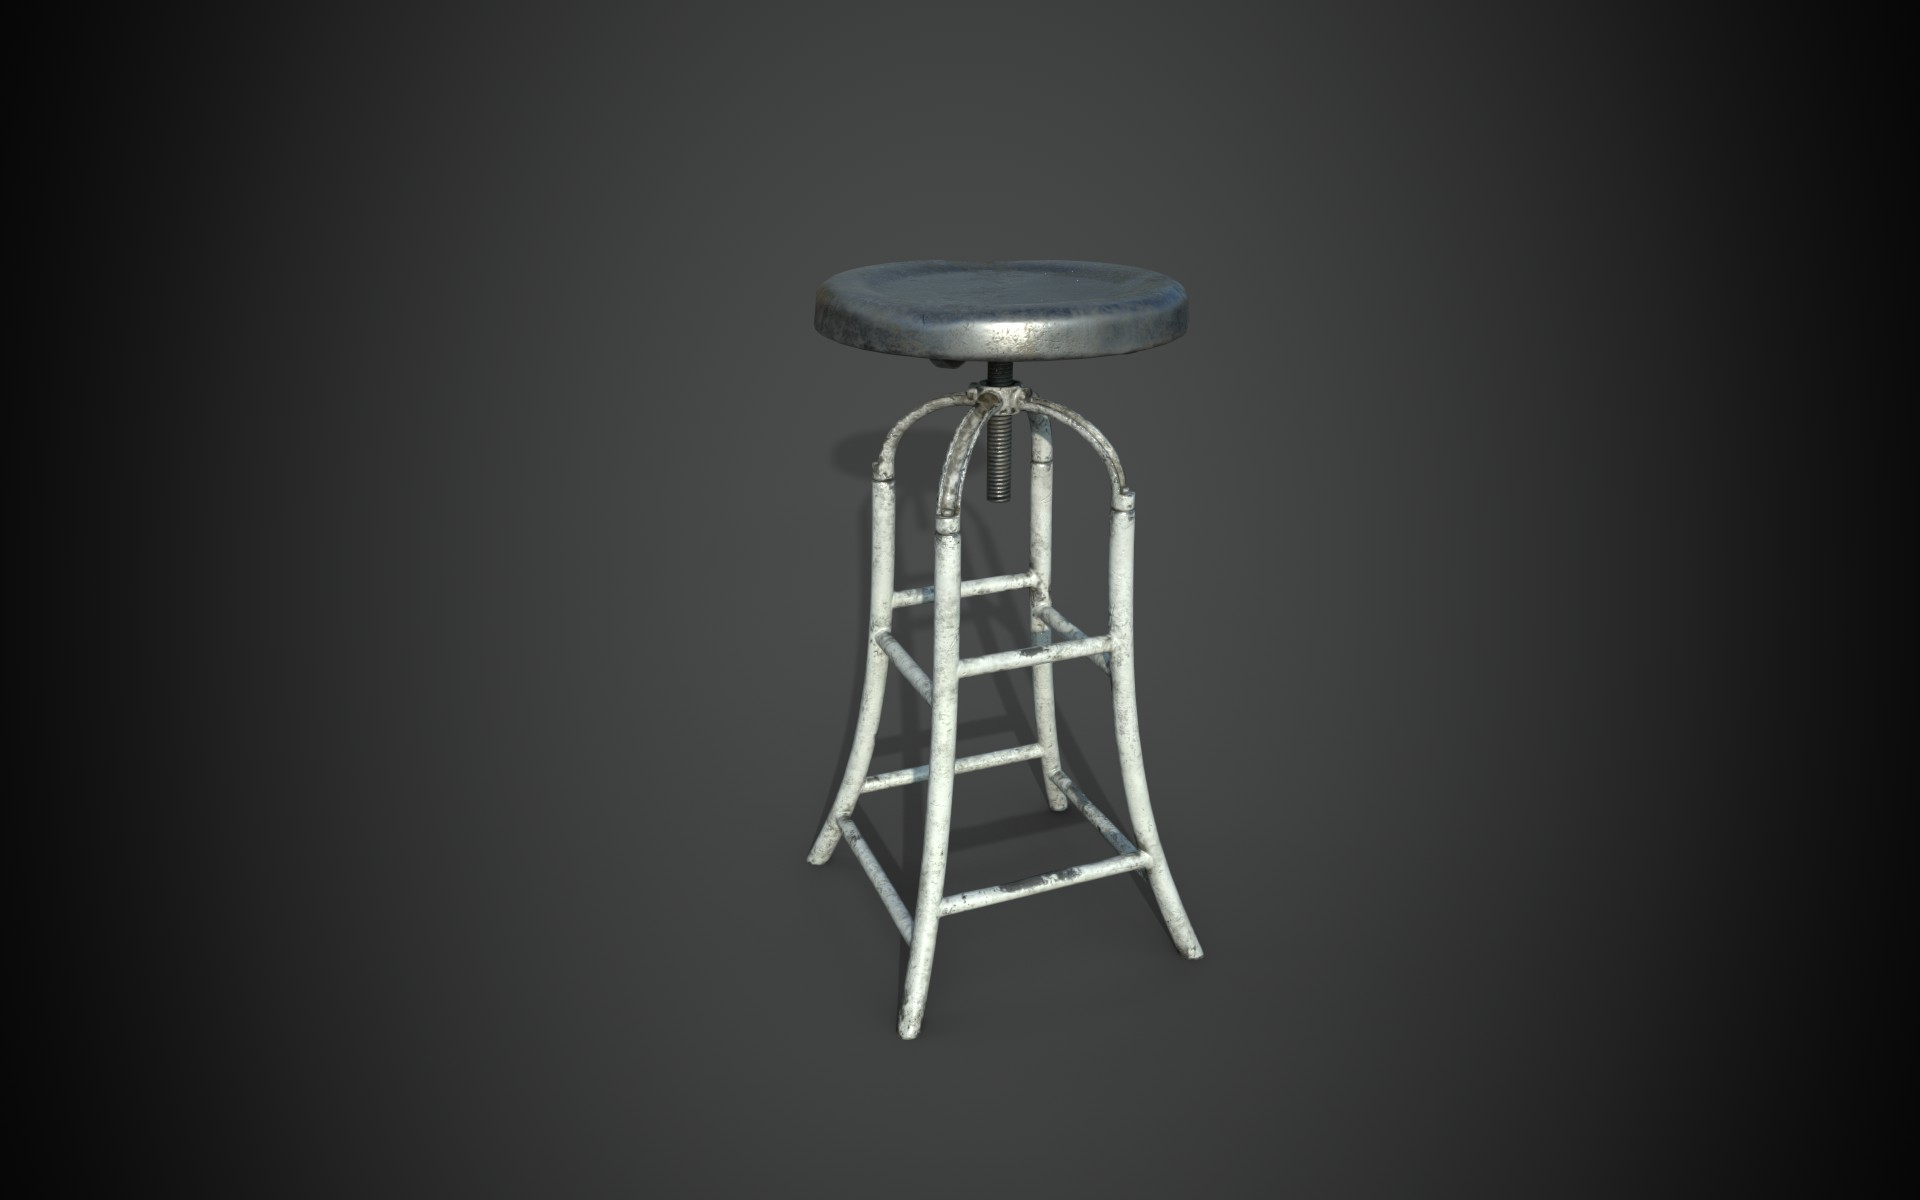 Metal stool from the 19th century